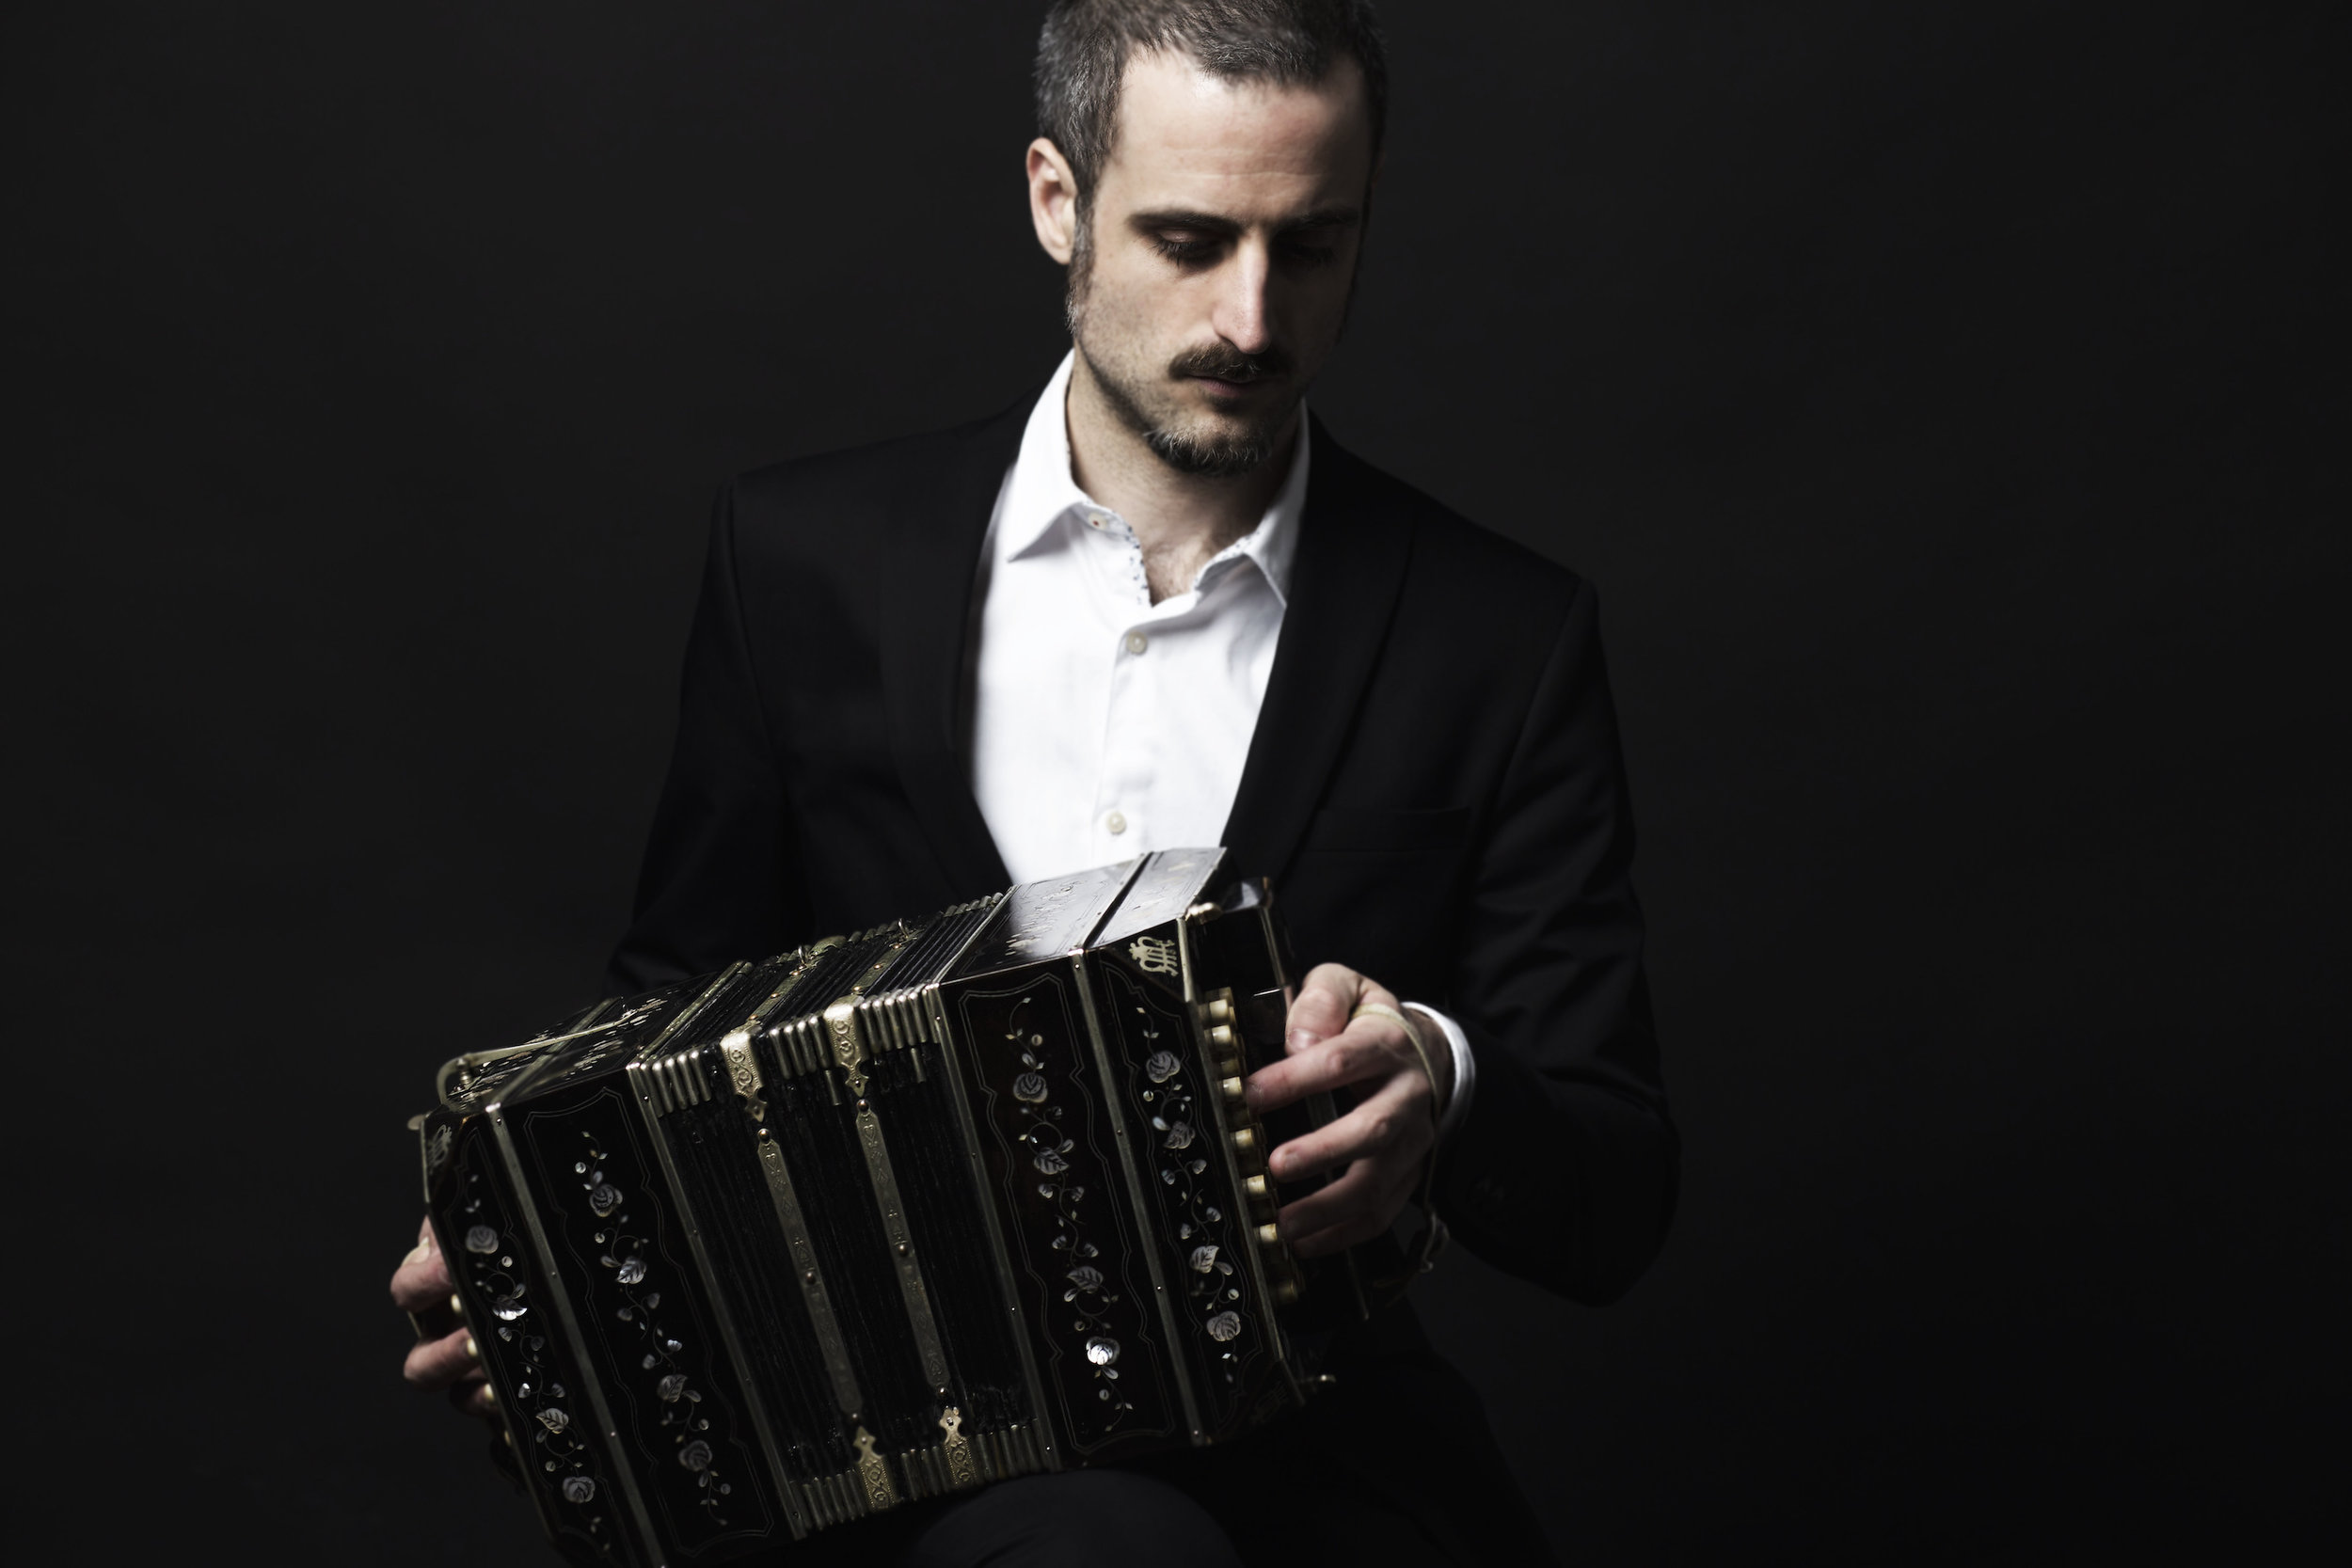 Omar-Massa-bandoneon-best-player.jpg